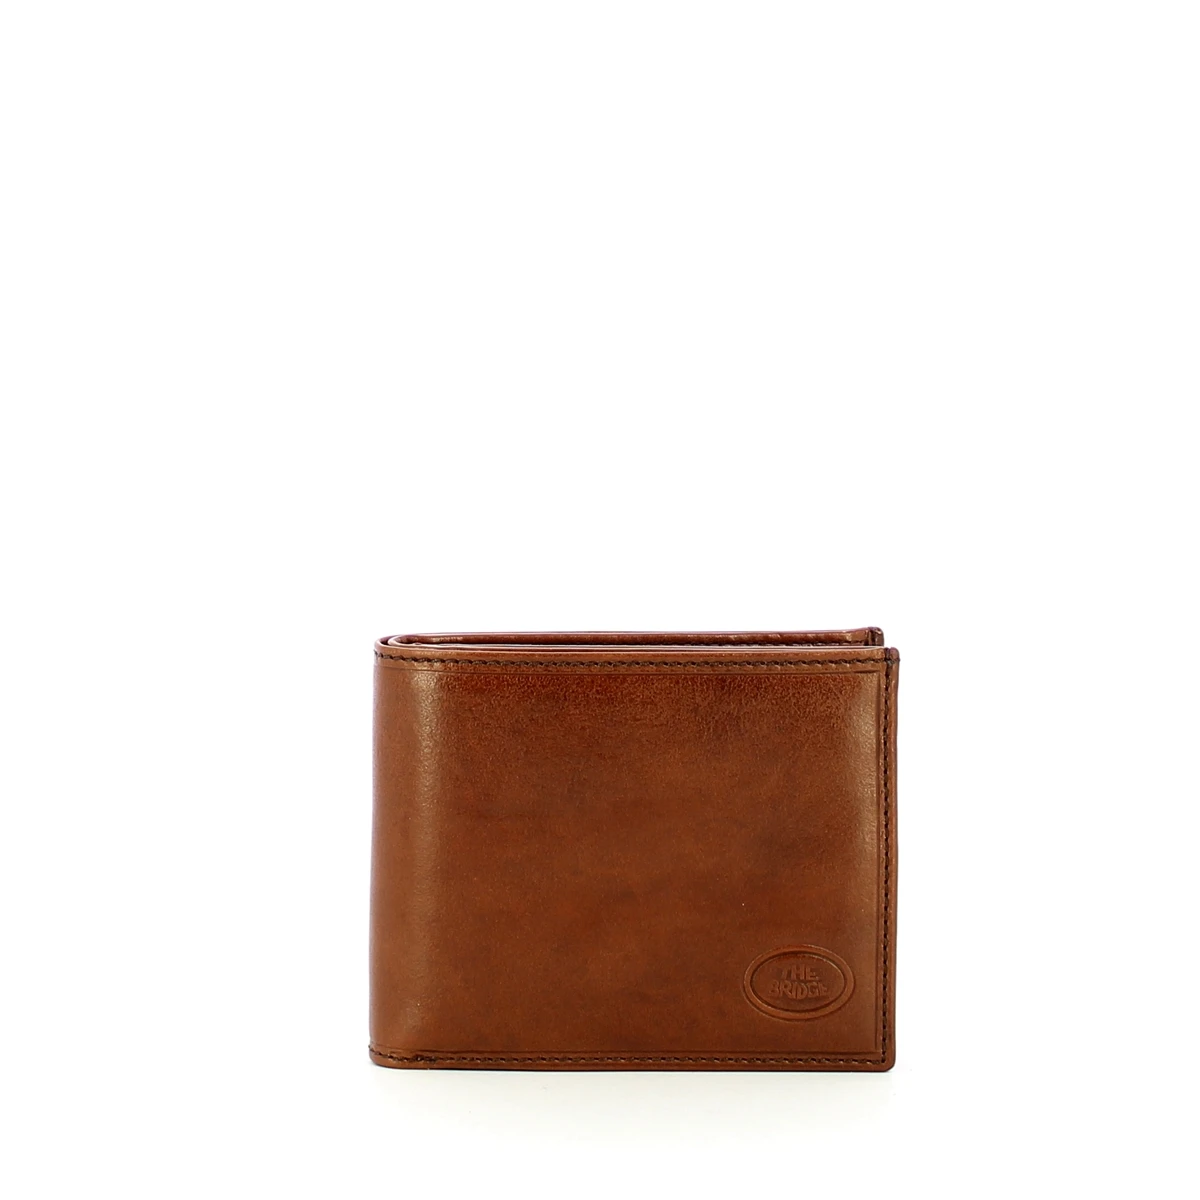 NEW The Bridge - Wallet Story with coin pouch + ID window - 01426601 - MARRONE/T